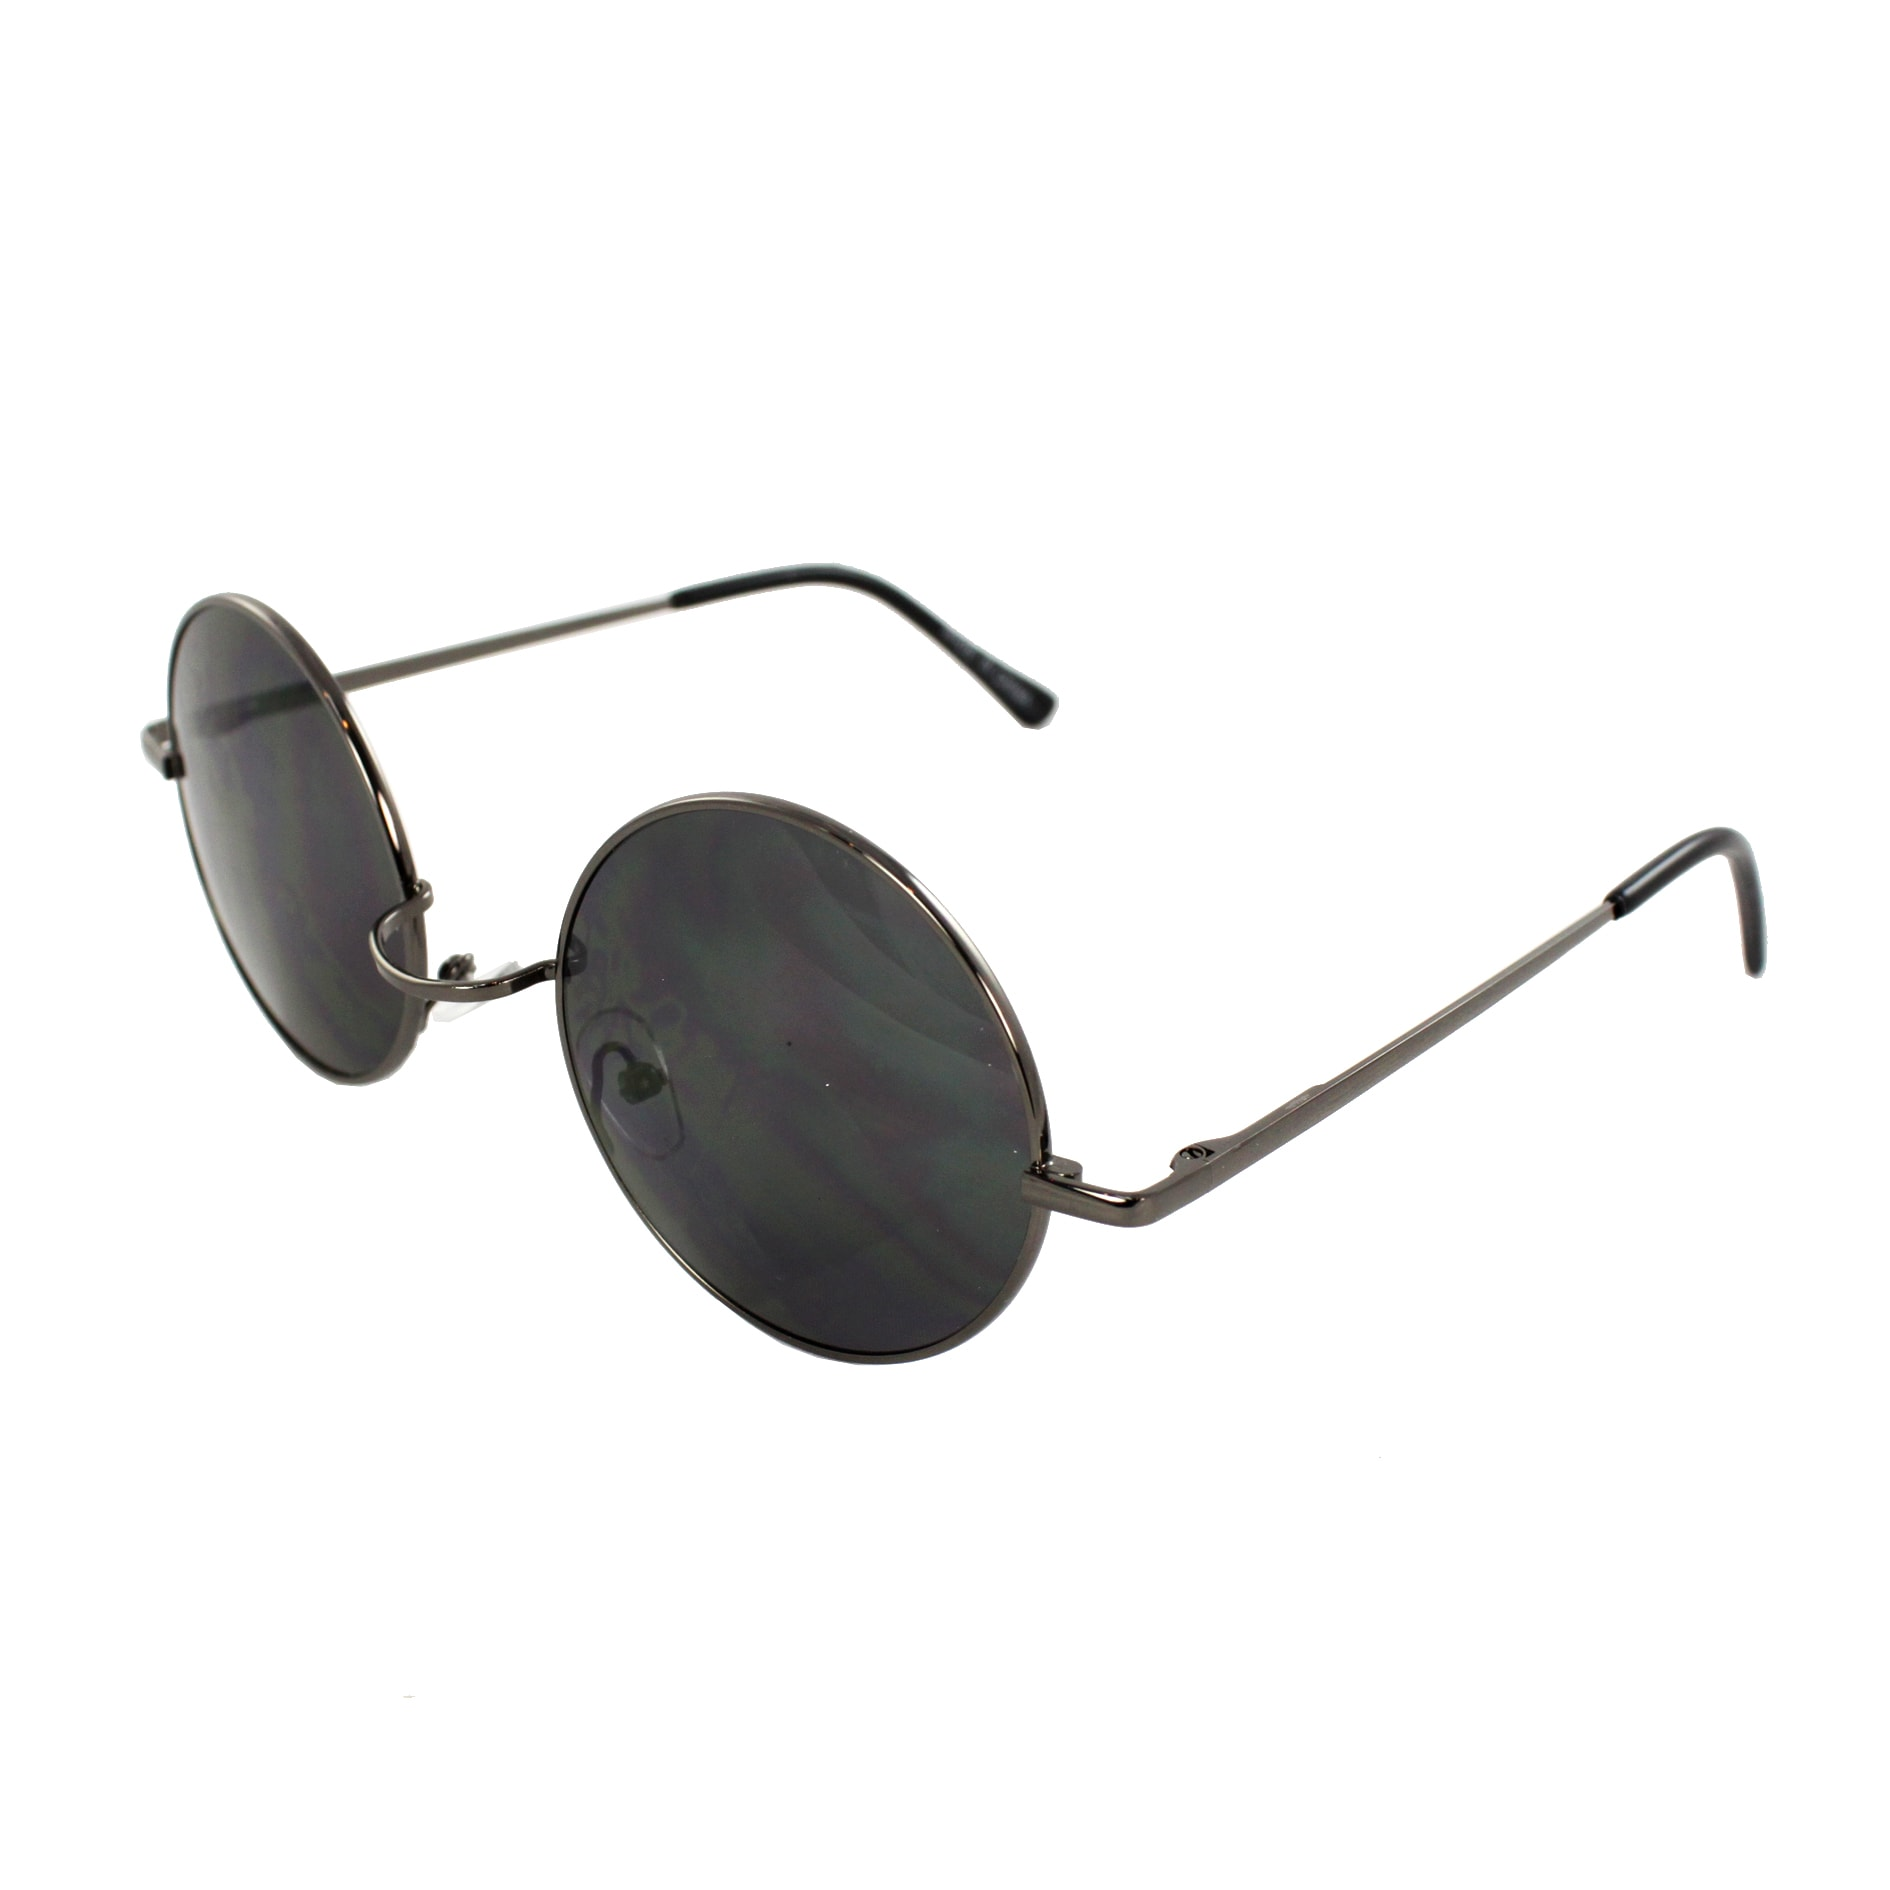 Retro Round Sunglasses Black Frame and Black Lenses for Women and Men - Thumbnail 0